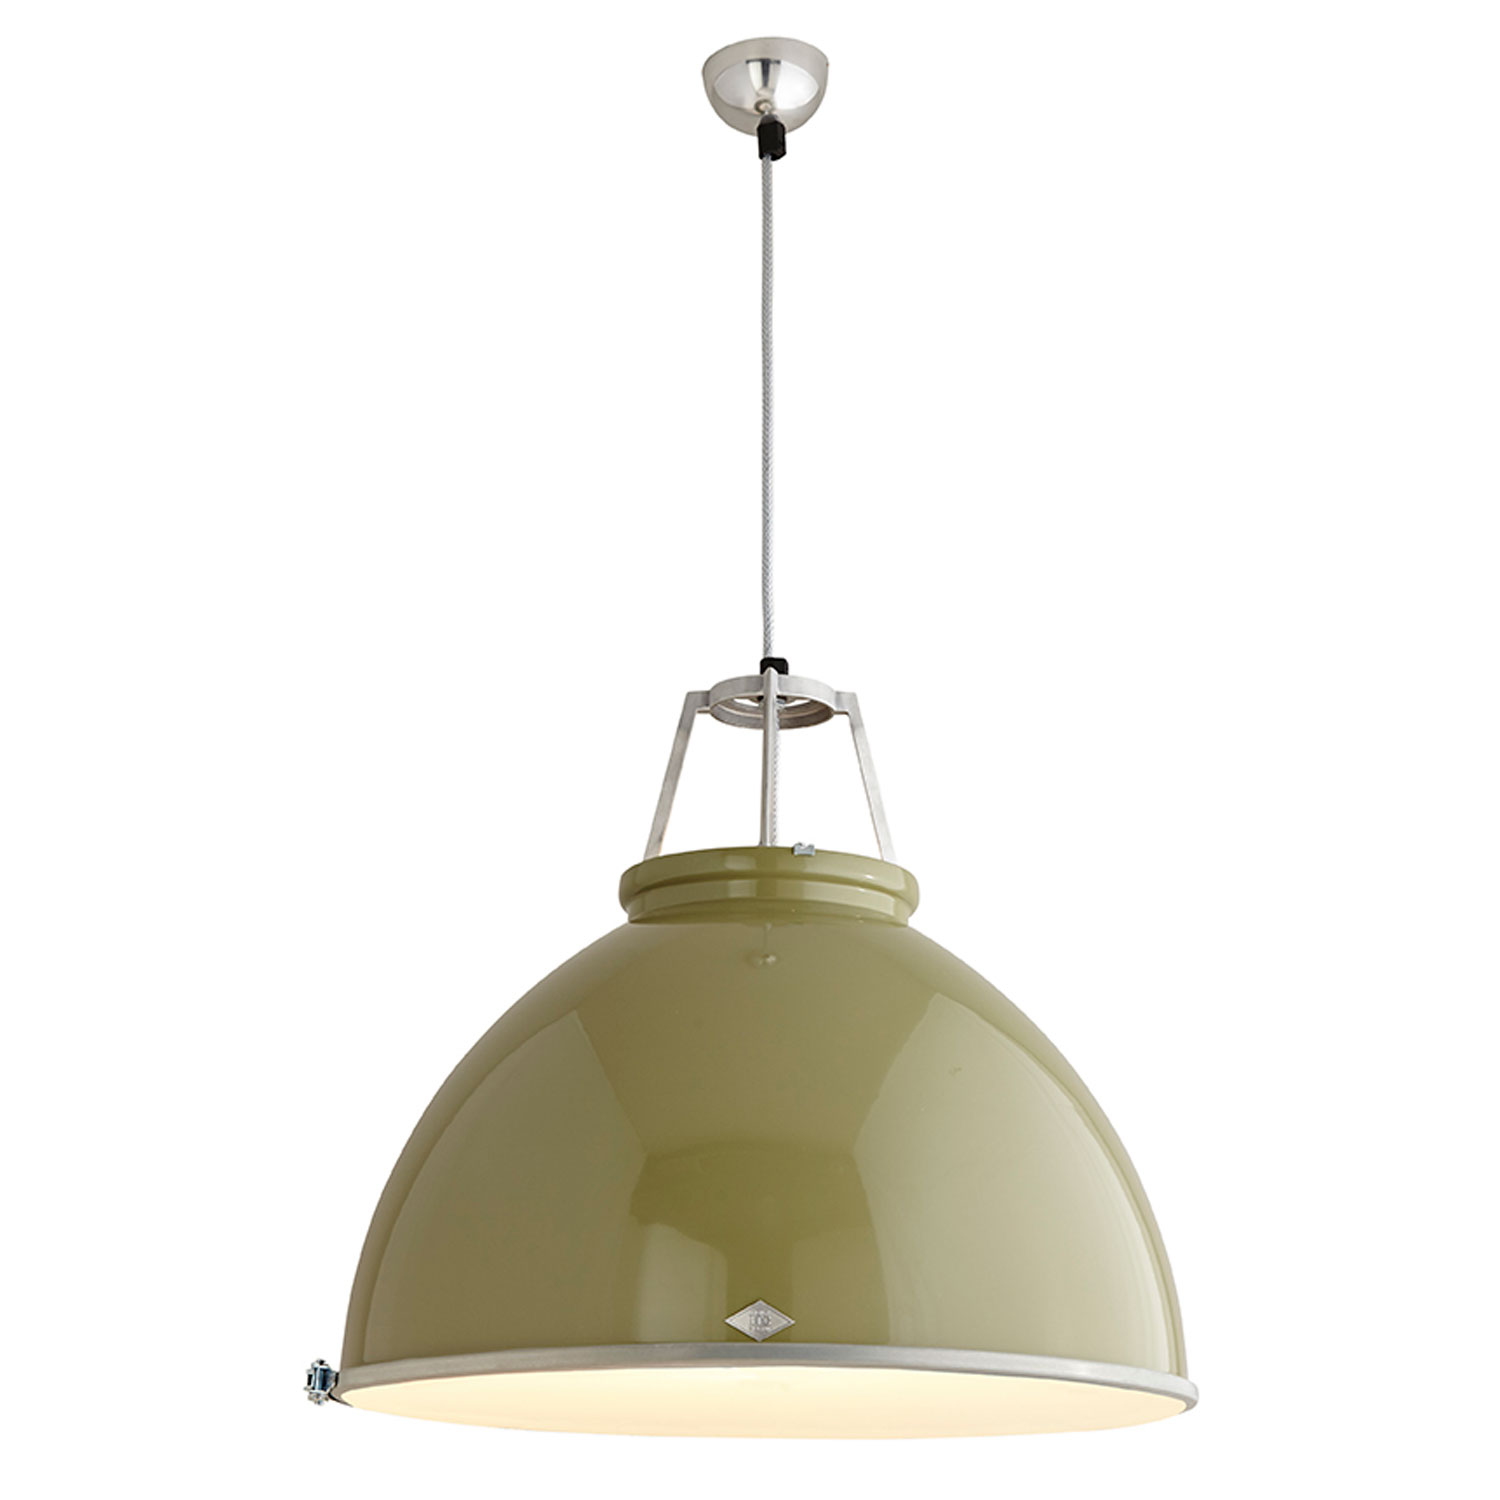 Titan Size 5 Pendant Light, Olive Green with Etched Glass